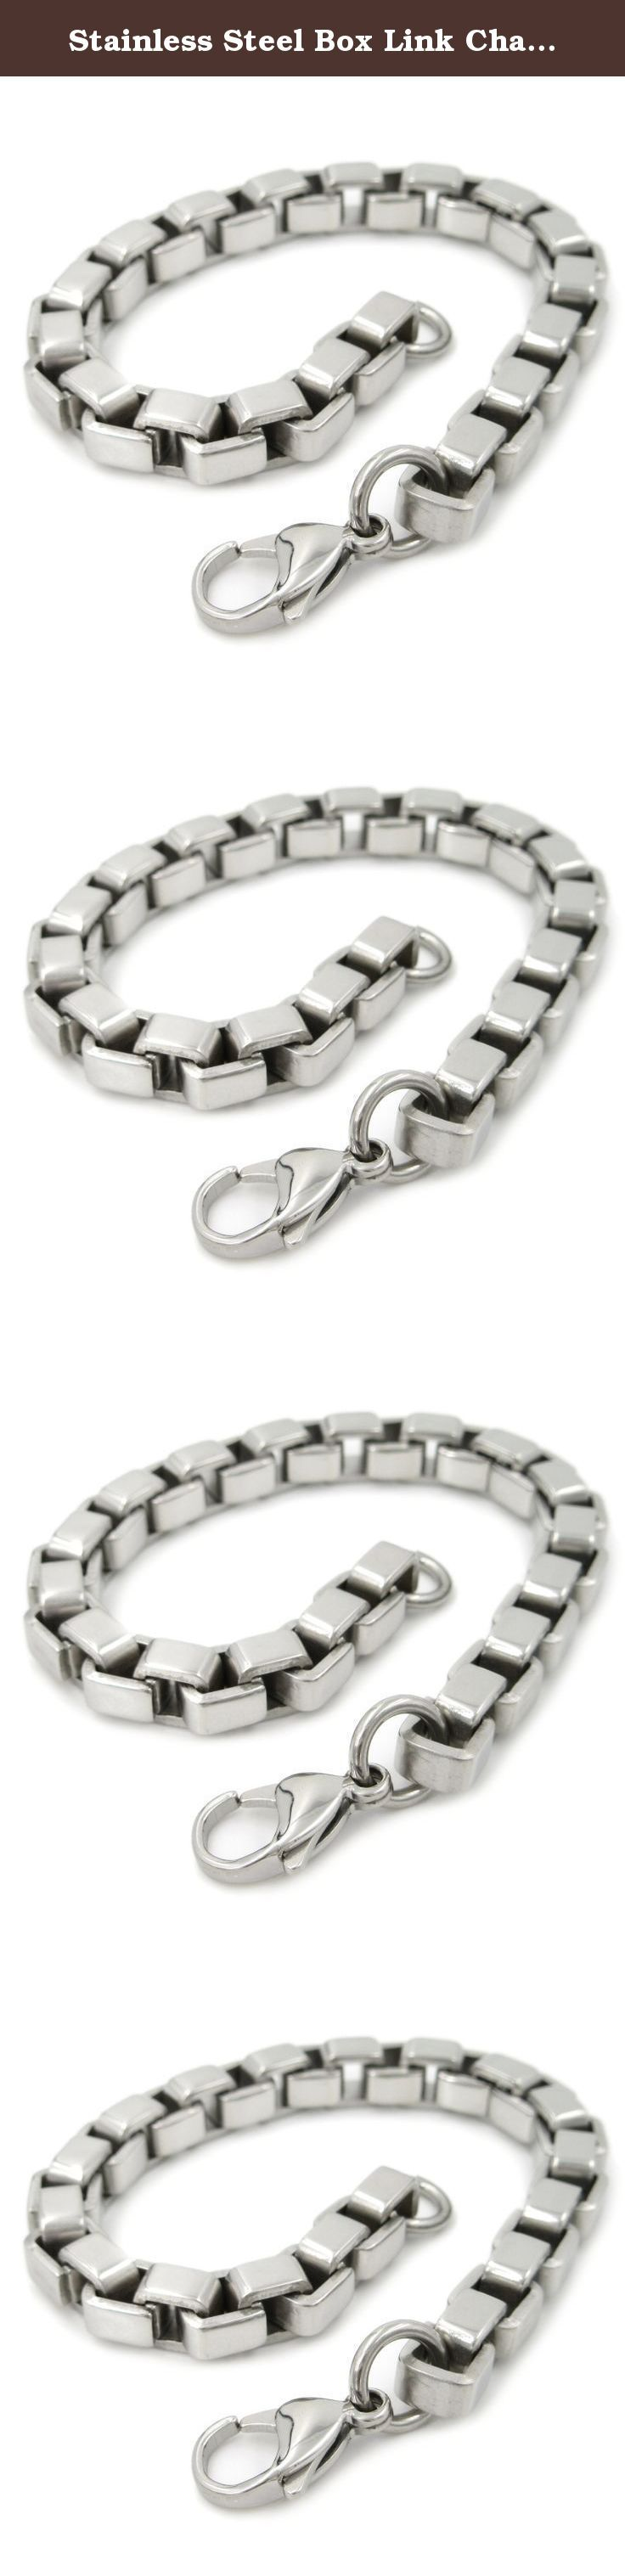 """Stainless Steel Box Link Chain Men Bracelet 8mm 8inch. One stainless steel bracelet. Strong masculine box link chain bracelet, lobster clasp. 8mm wide, fit 8"""" (8 inches) wrist. Comes with a gift bag. ** The coin in the picture is a US quarter dollar for size comparison only and not included."""